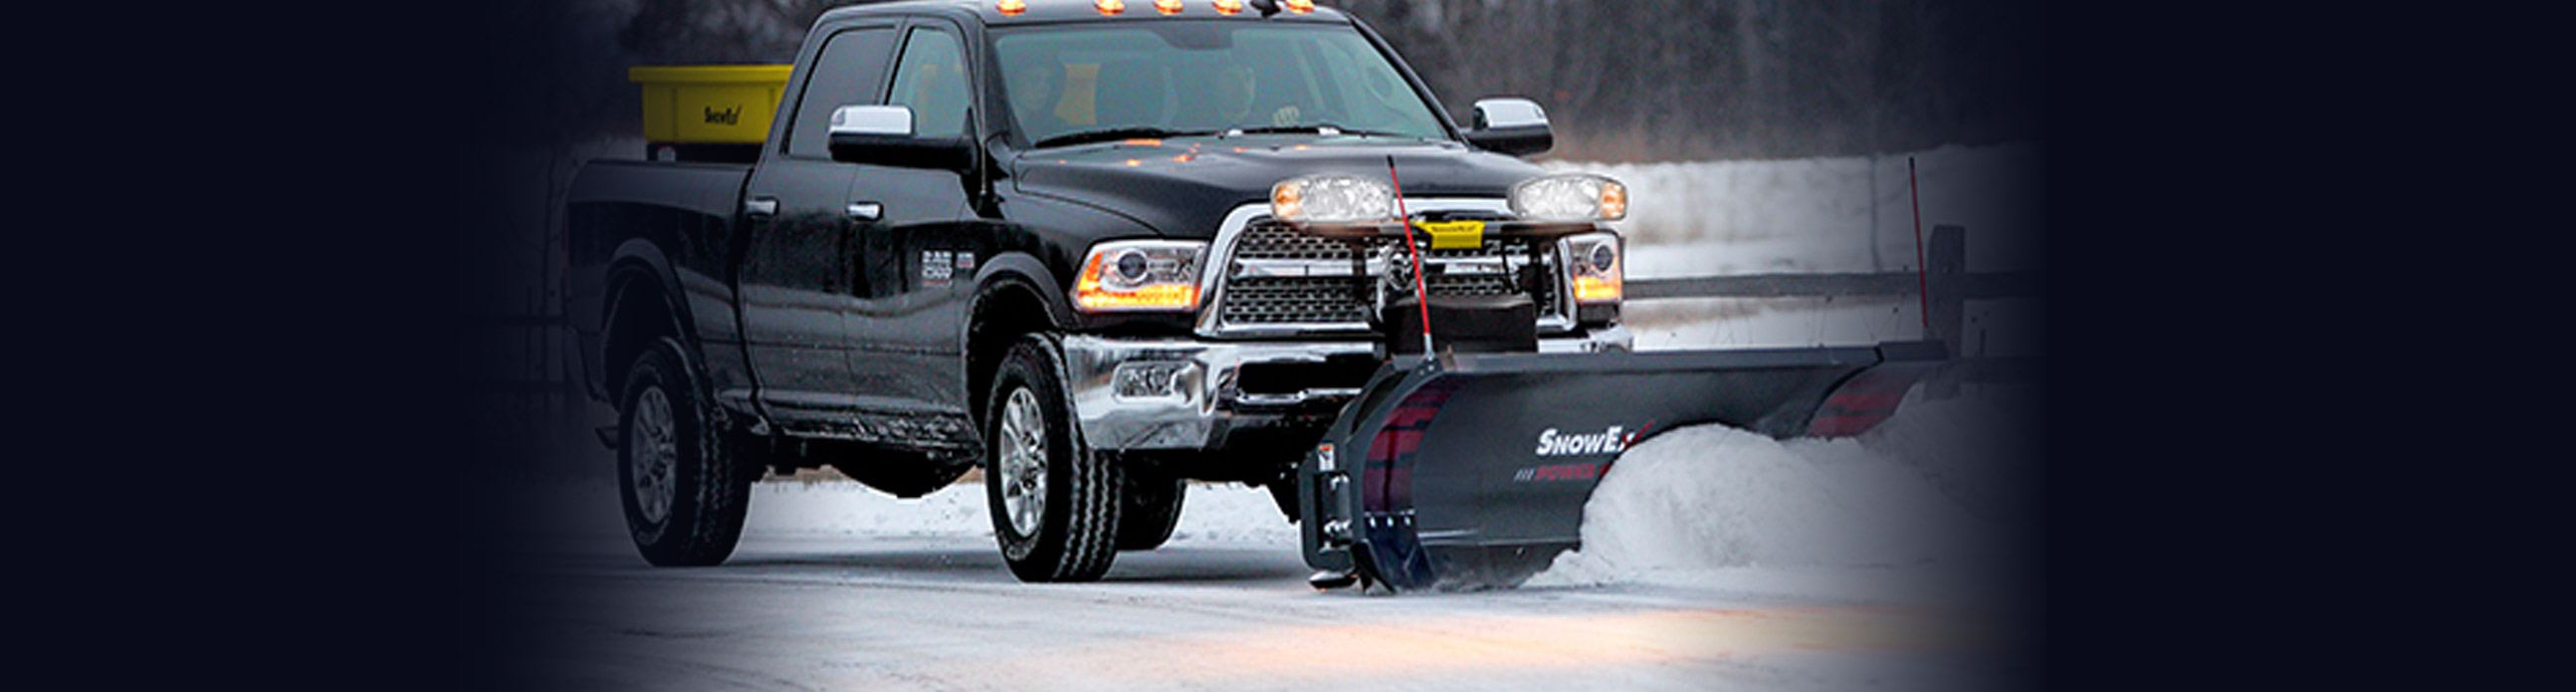 Snow Plow Sales, Parts, Service